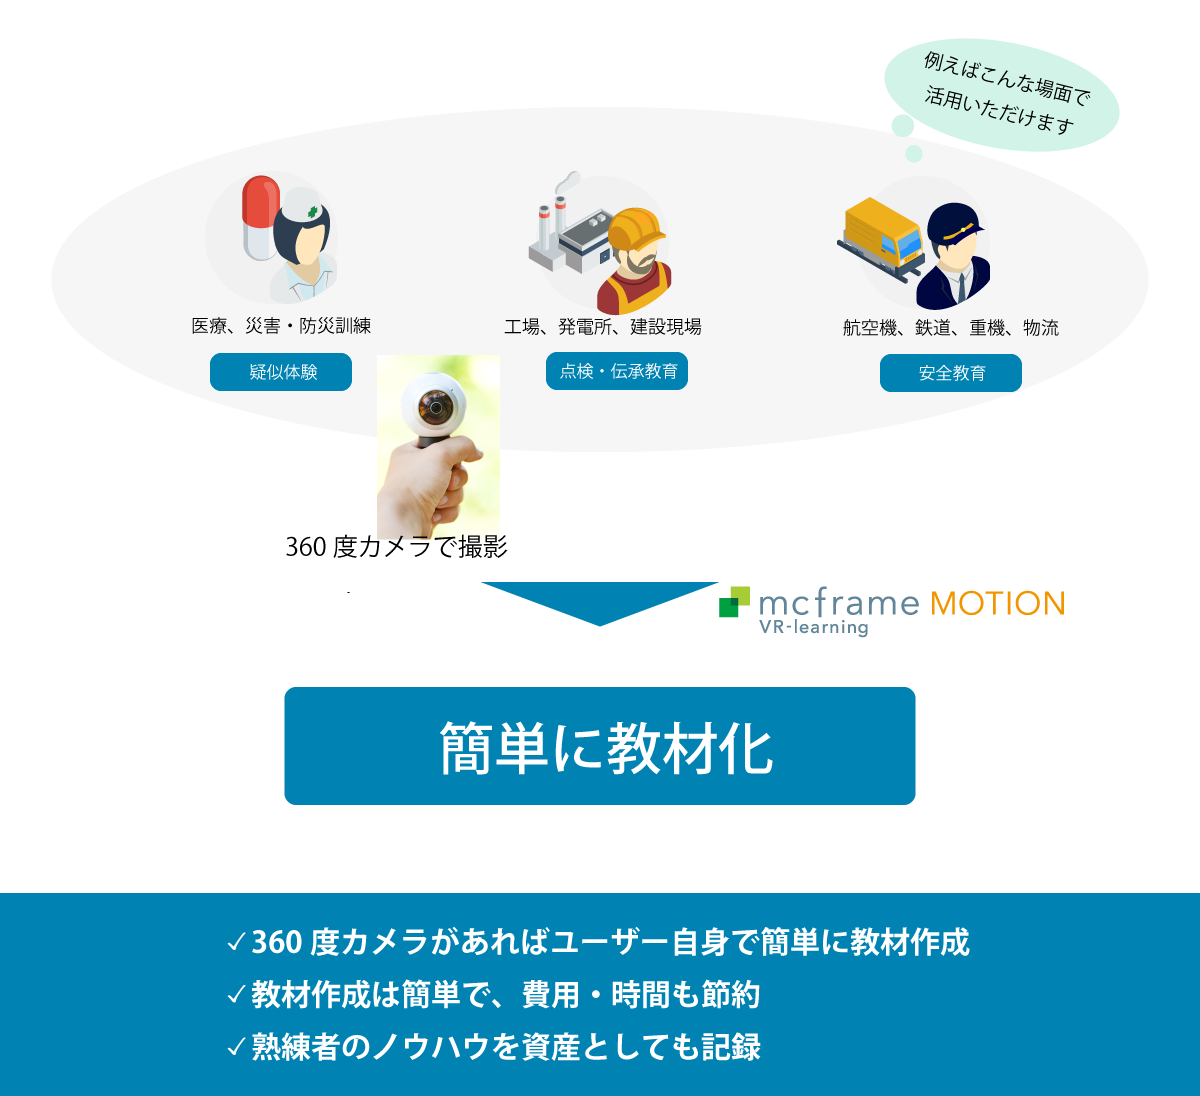 「mcframe MOTION VR-learning」とは